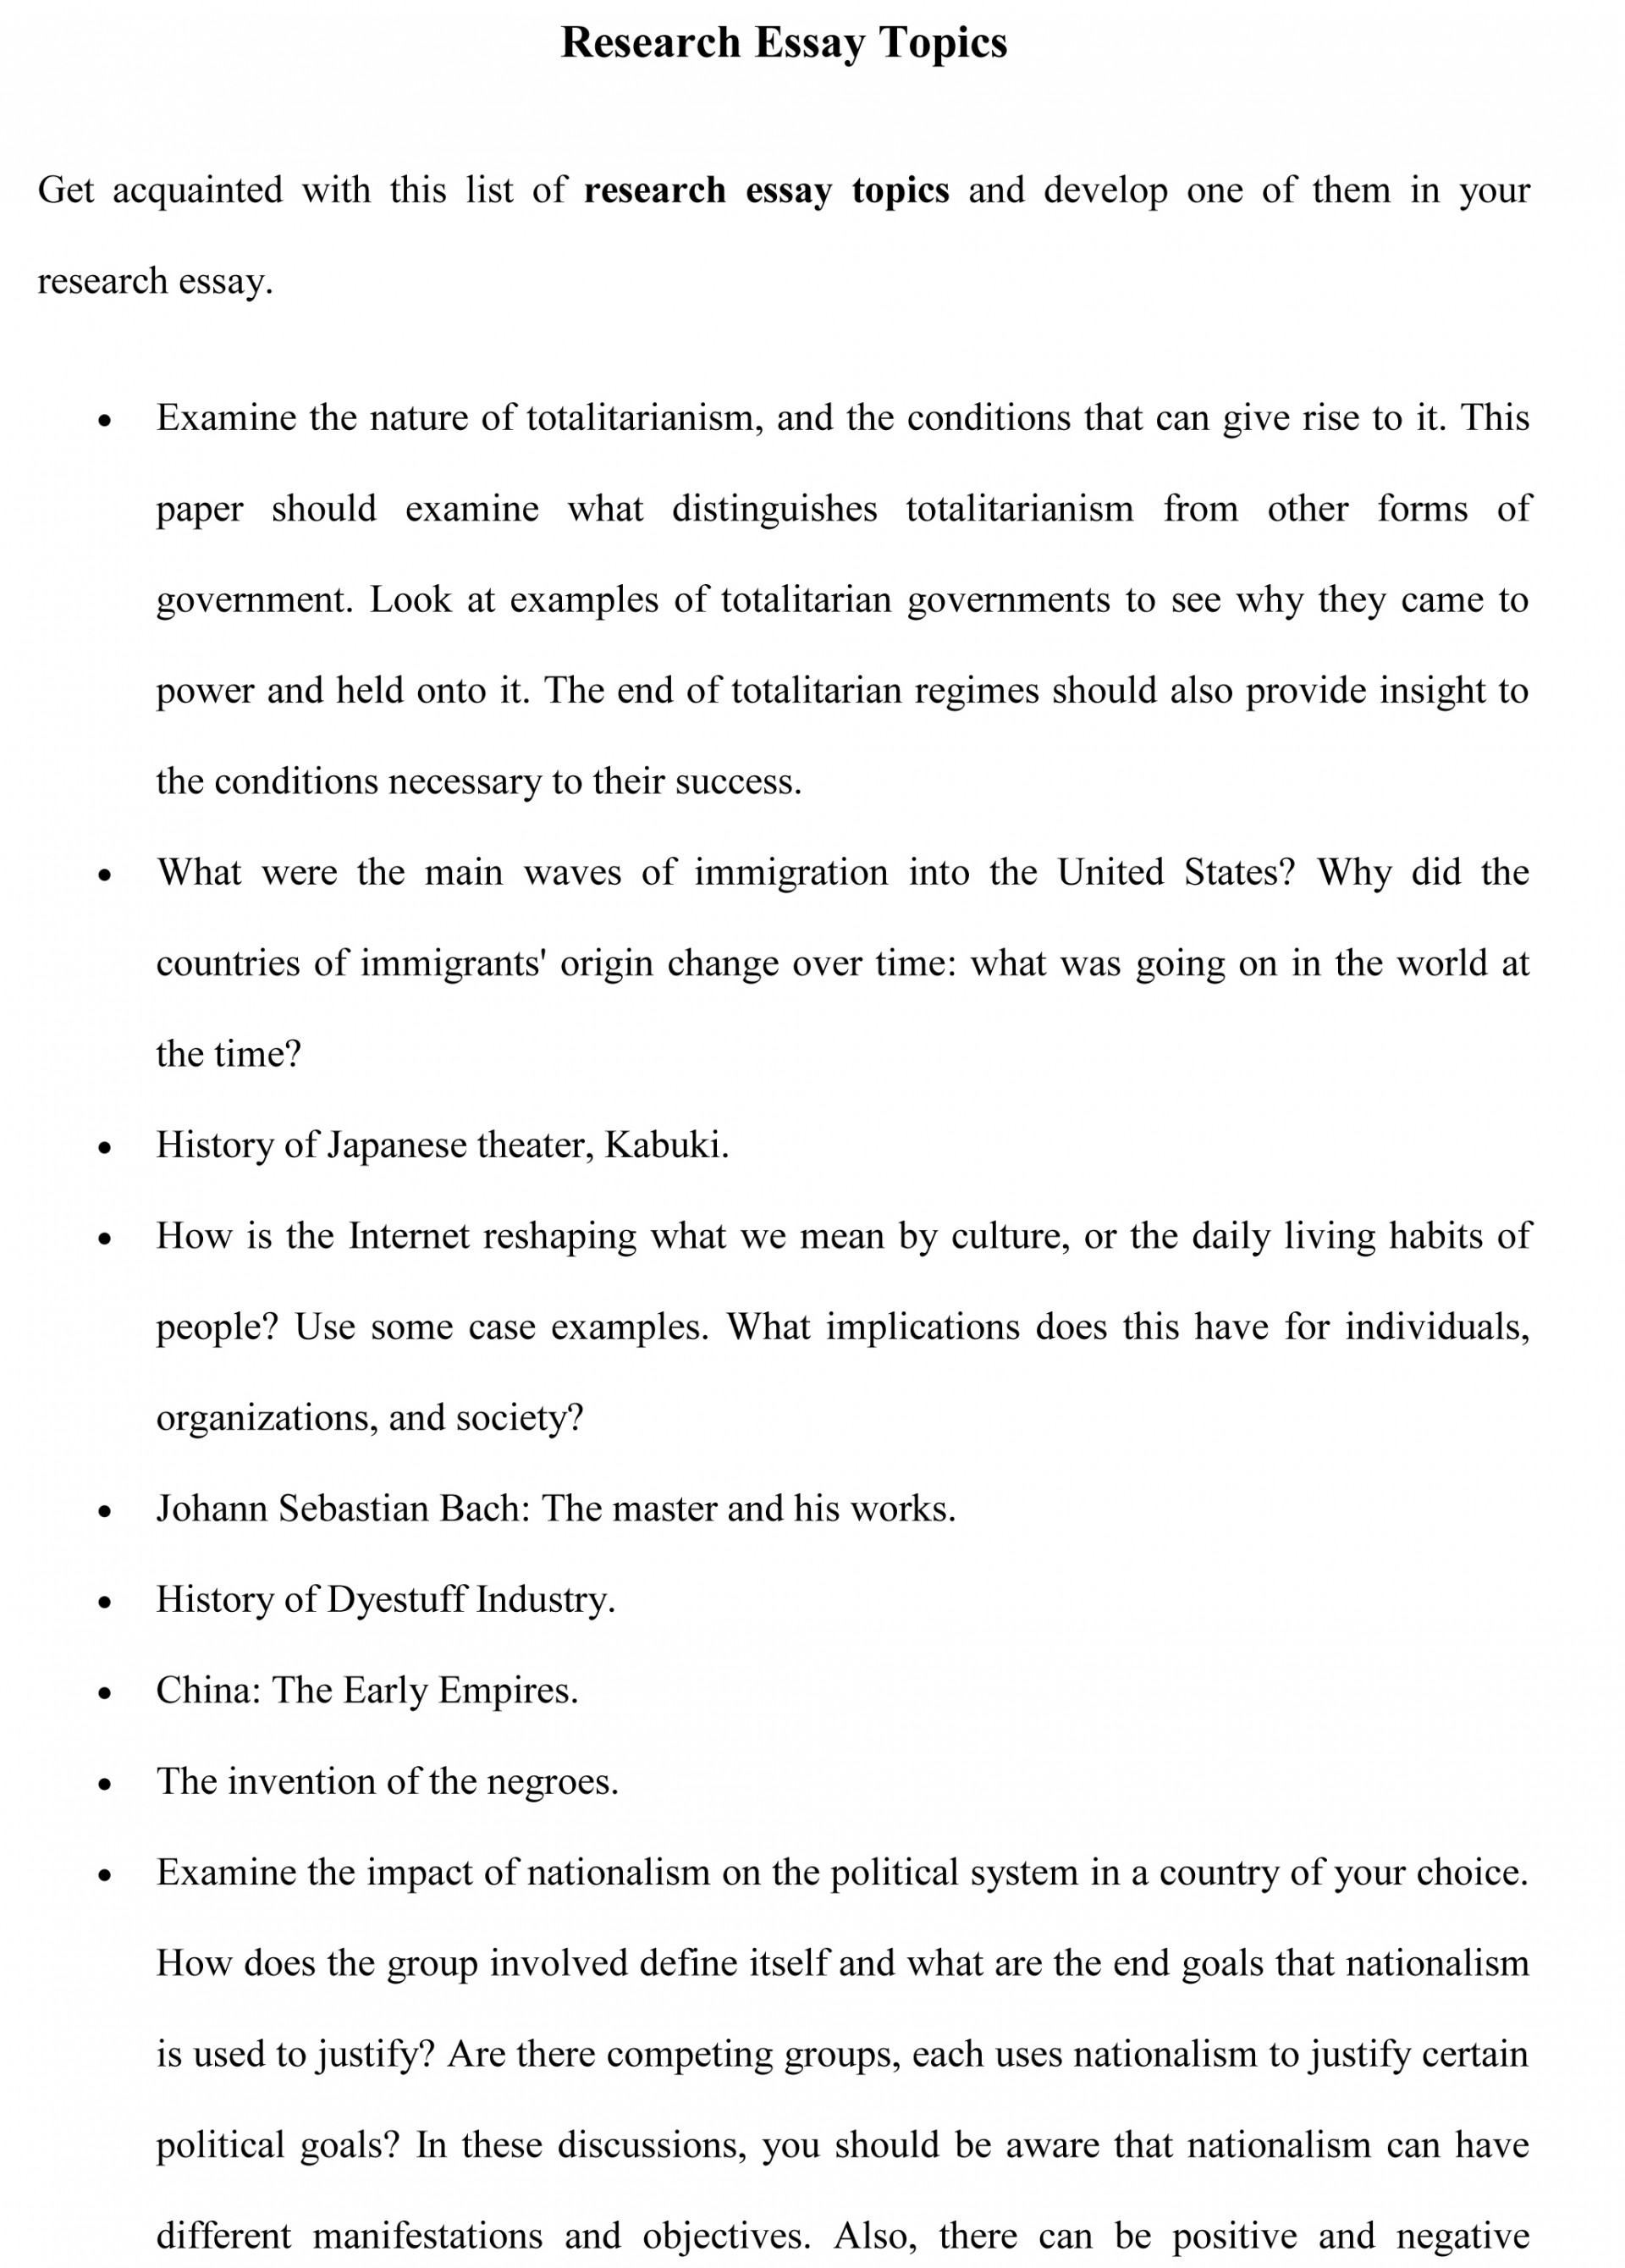 005 Research Paper Possible Topics For Business Essay Striking A Globalization International 1920